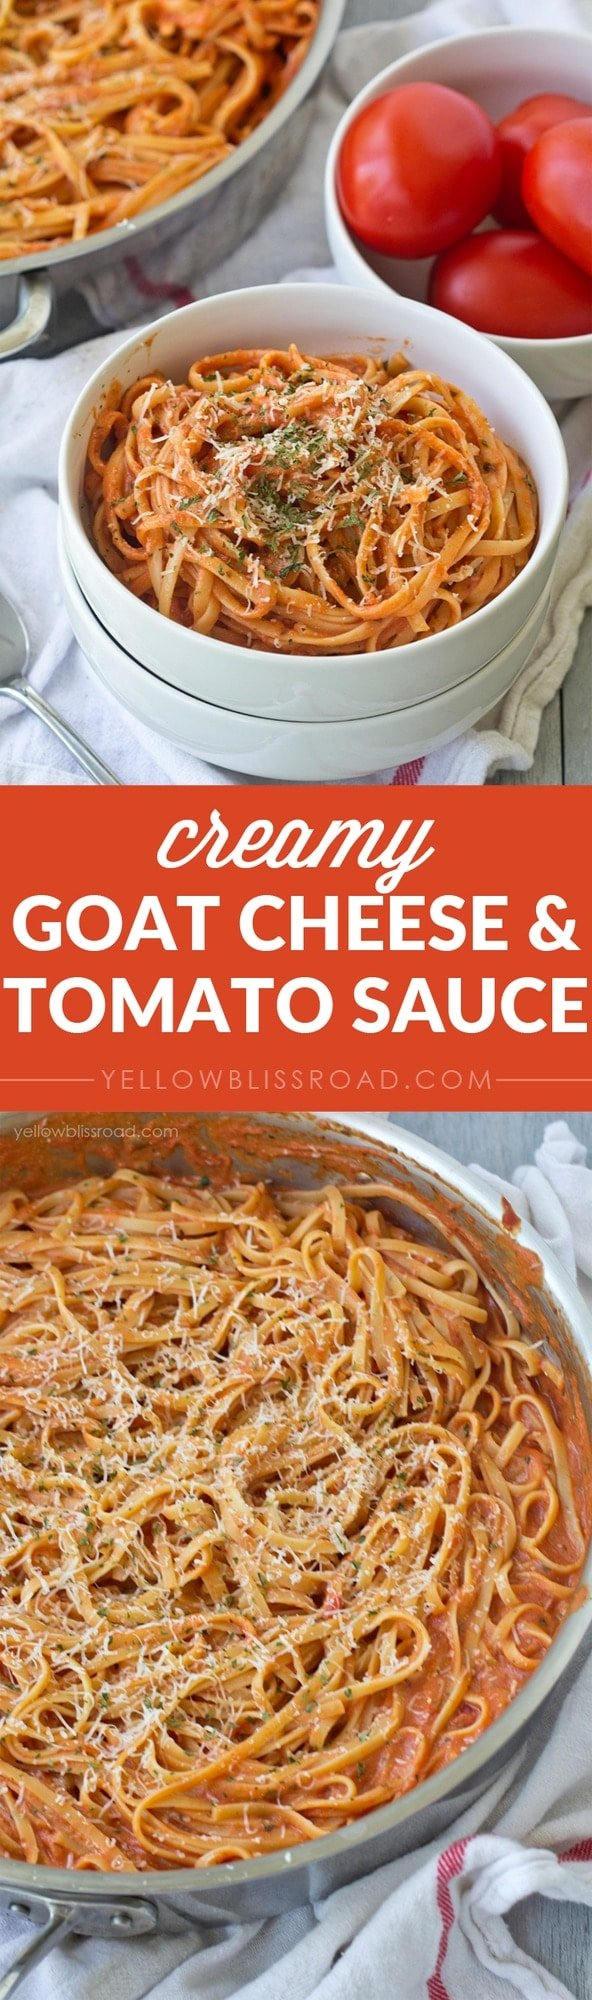 tomato goat cheese pasta sauce recipe